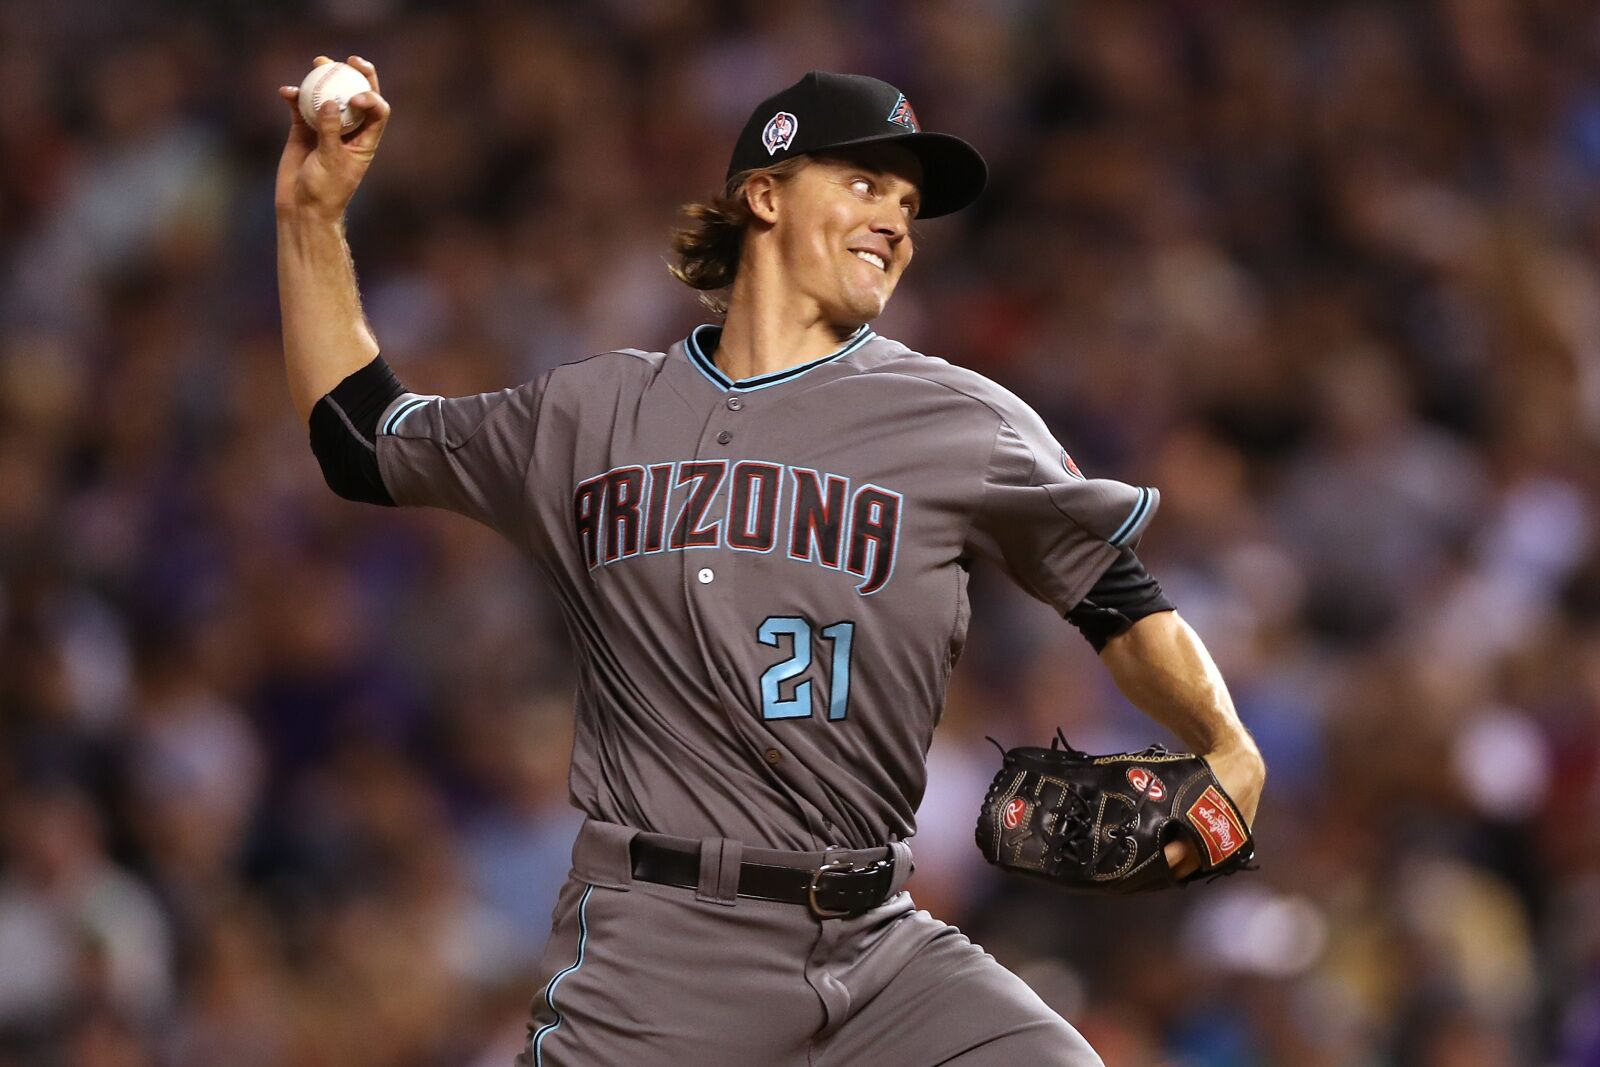 Astros: Zack Greinke and Paul Goldschmidt trade package worth consideration